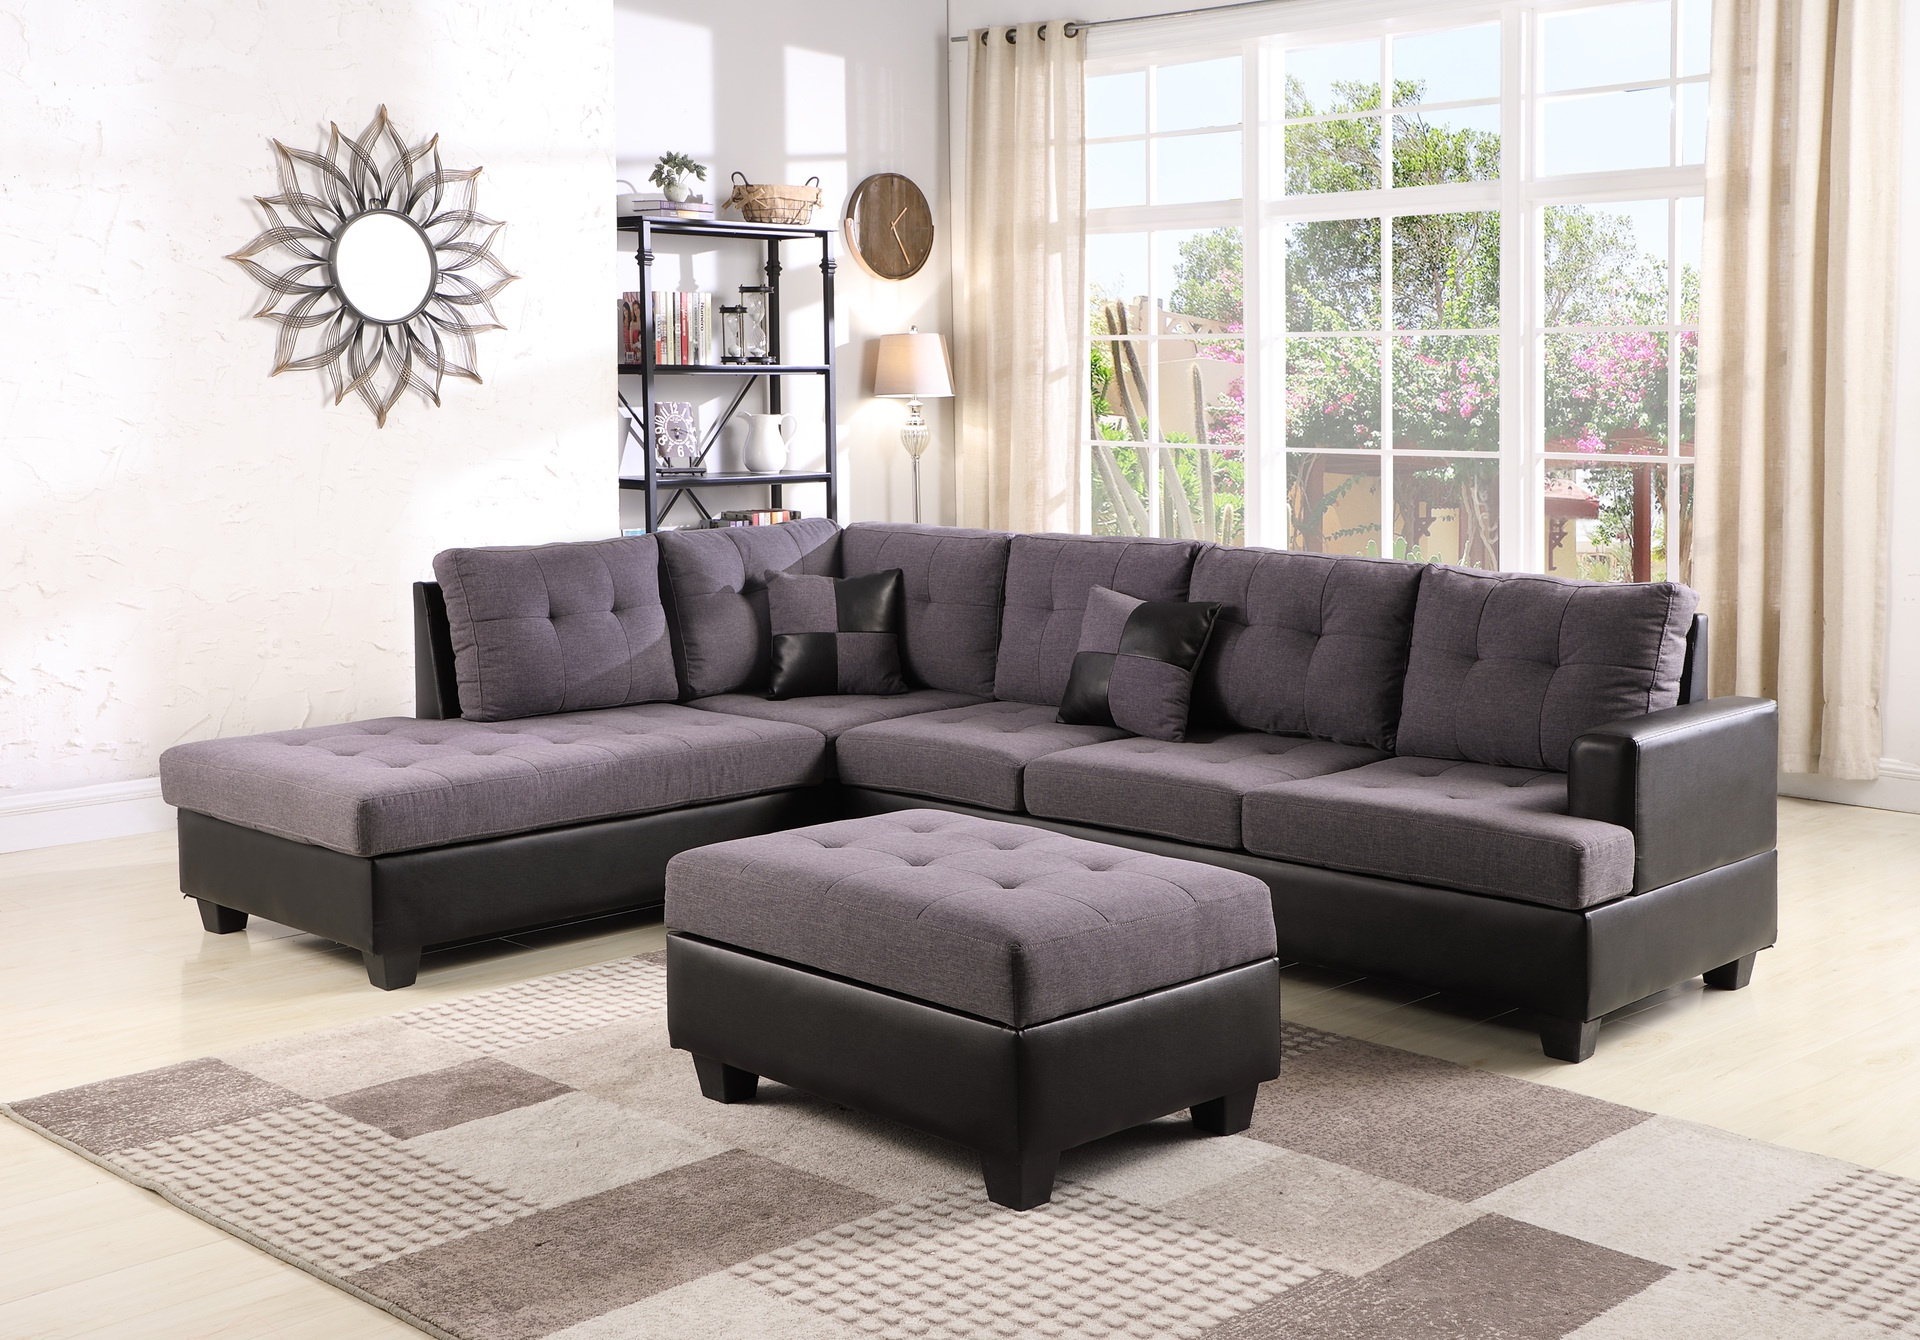 Ashton 5 Seater Corner Sofa Fabric